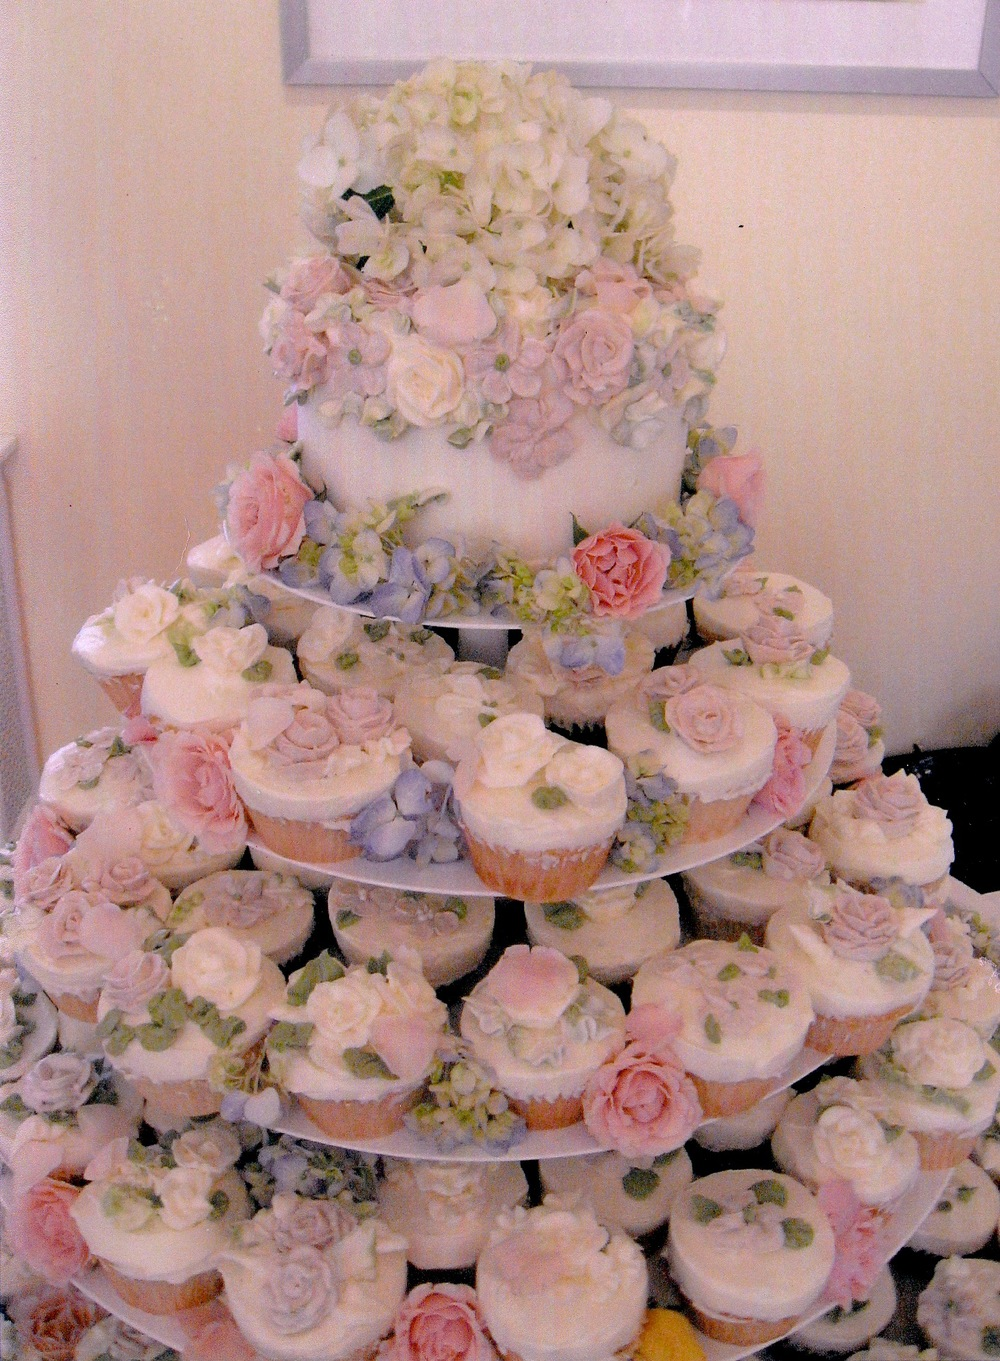 Expensive wedding cakes for the ceremony: Cupcake wedding cakes in ...